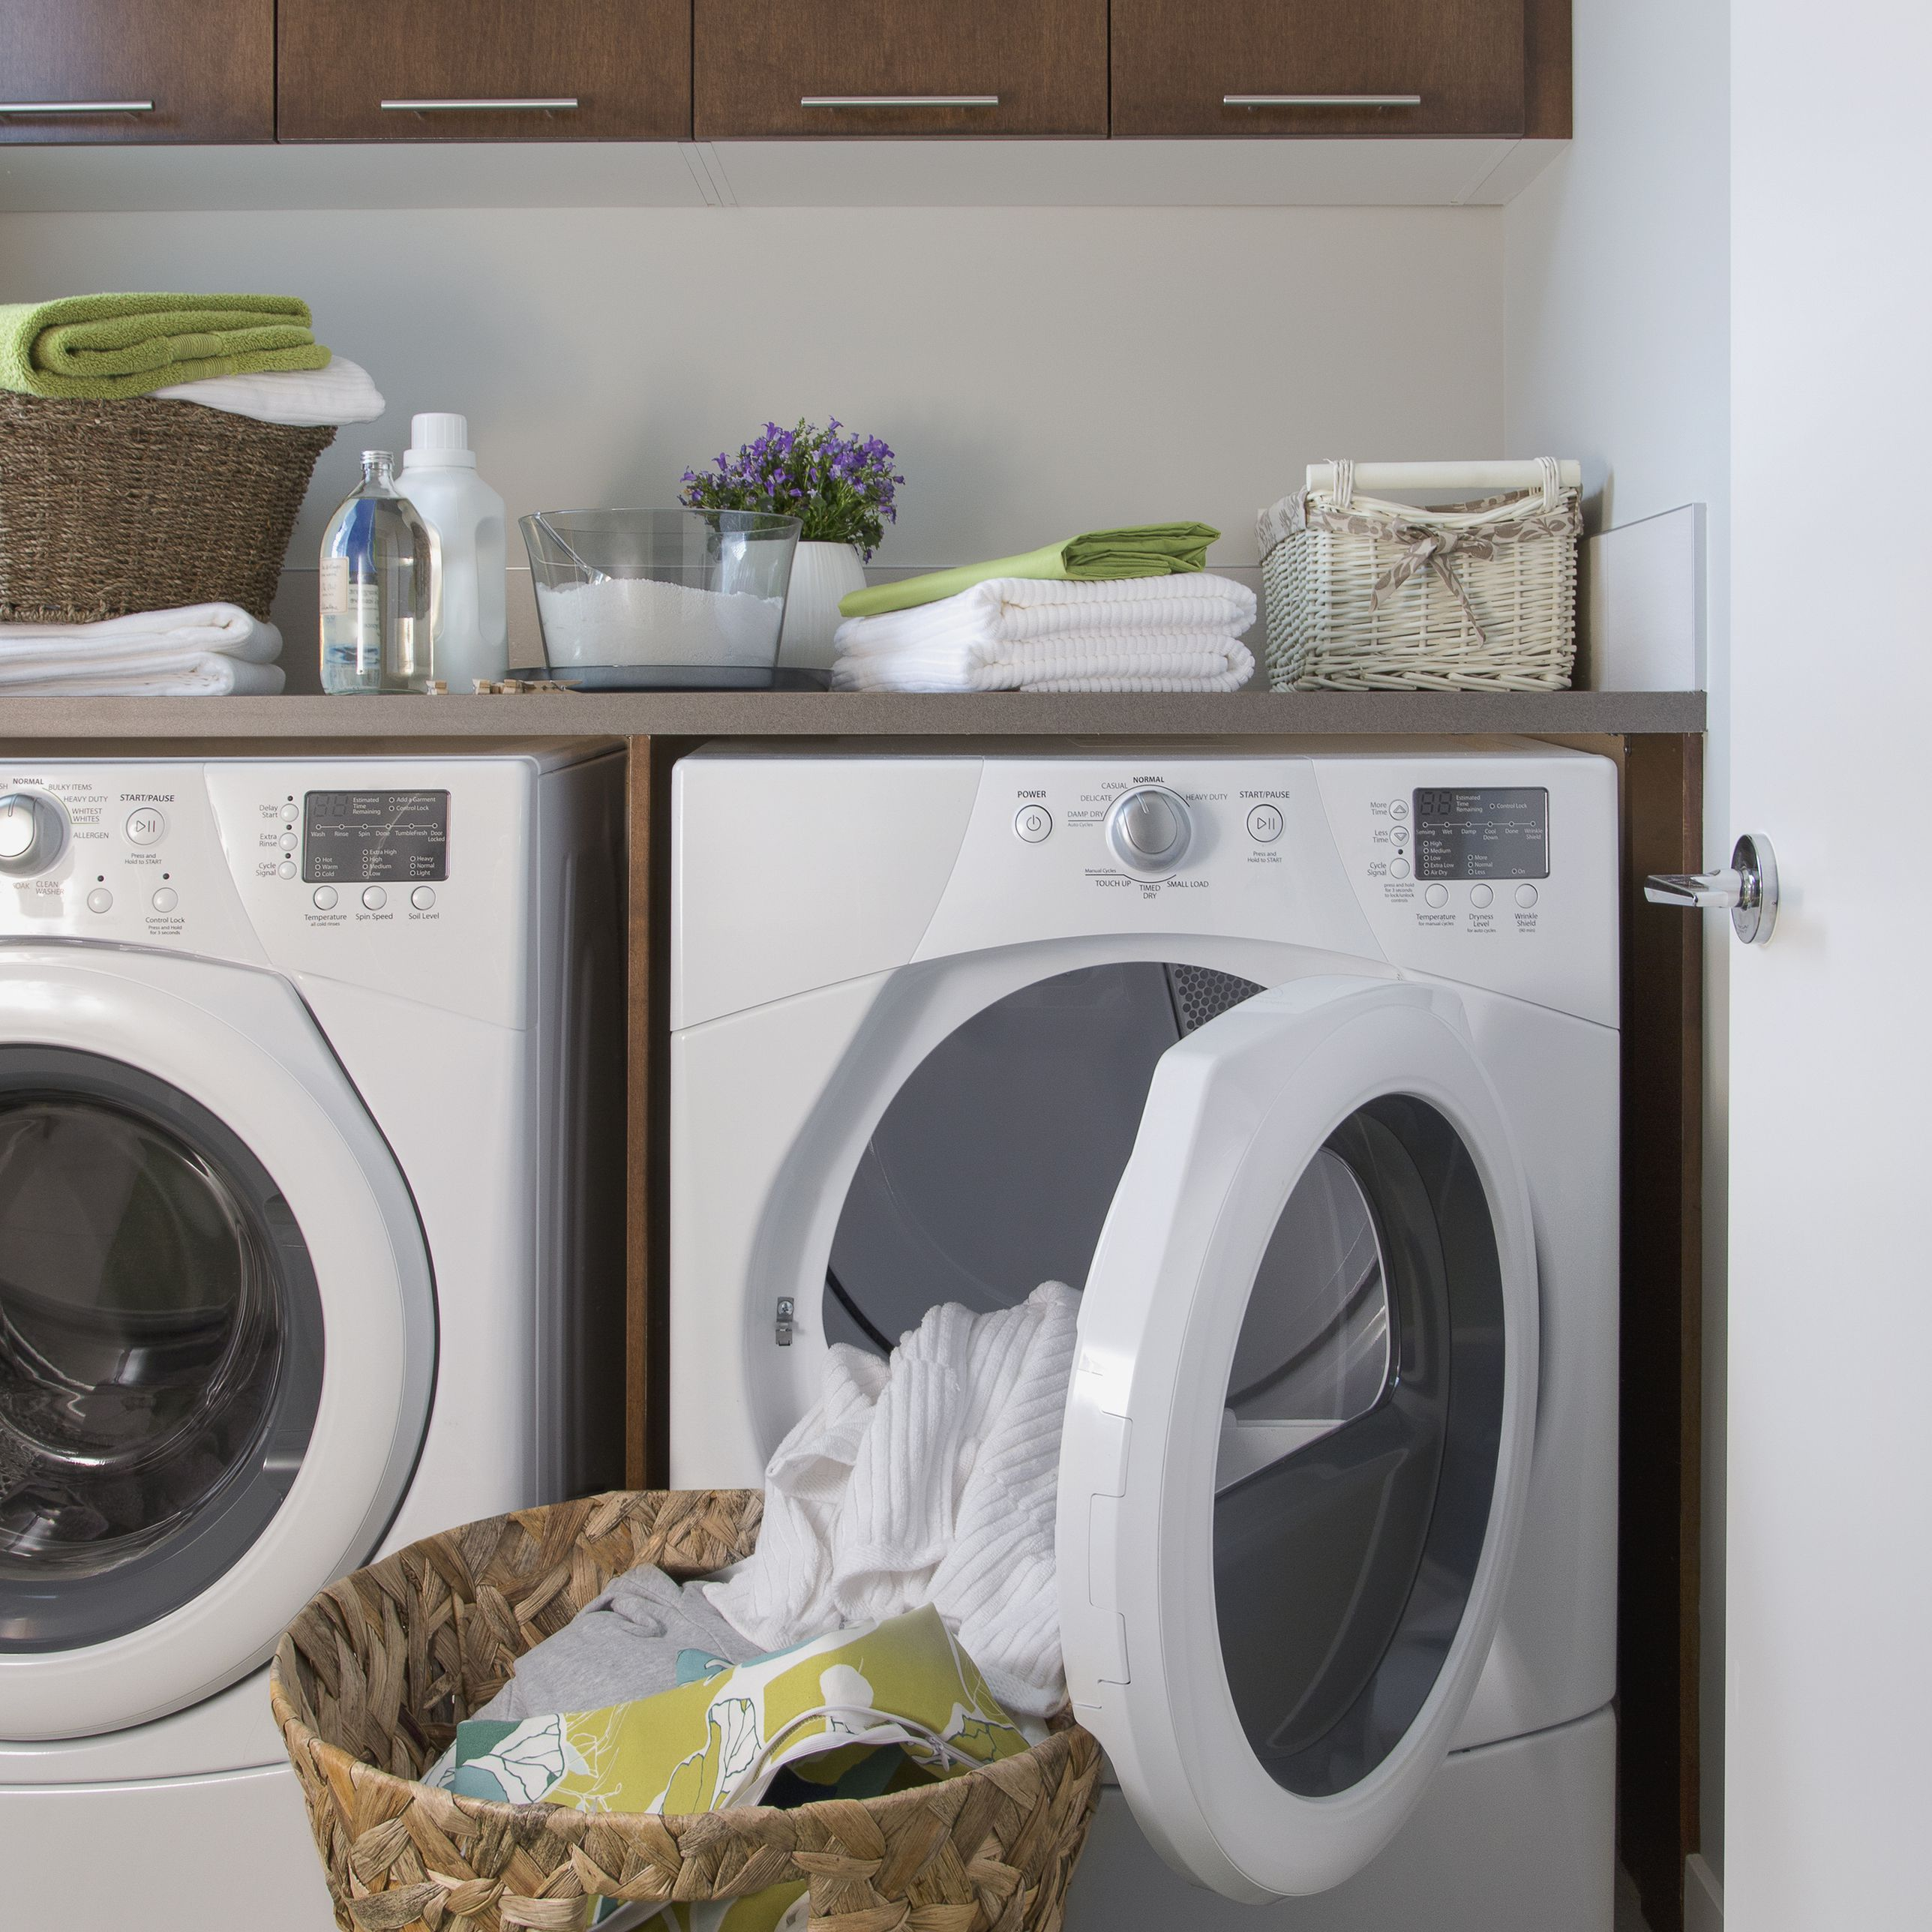 How Does A Clothes Dryer Work